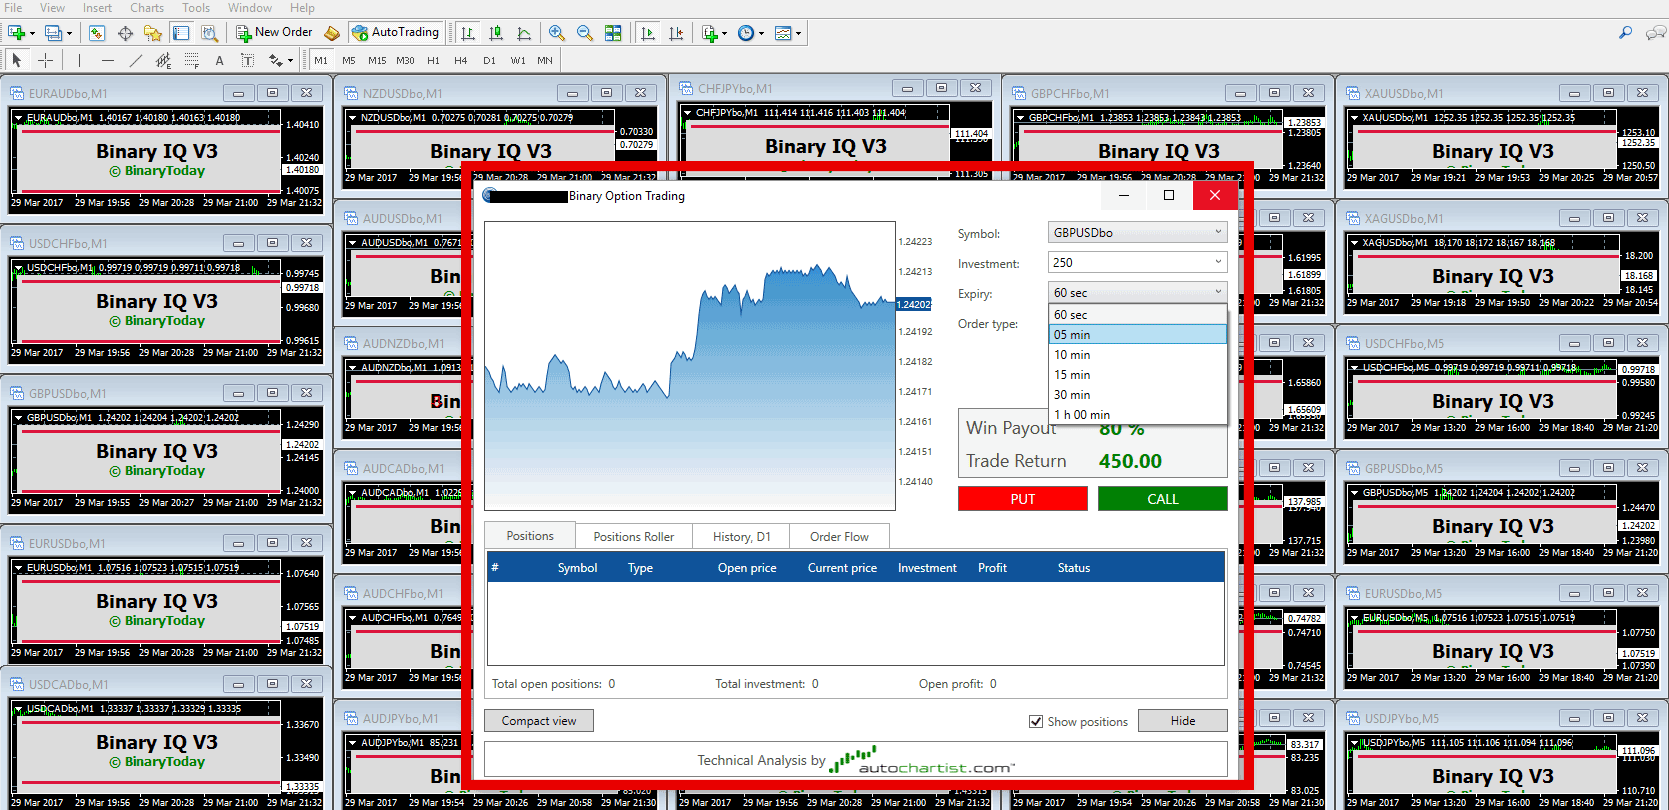 Binary trading options demo account